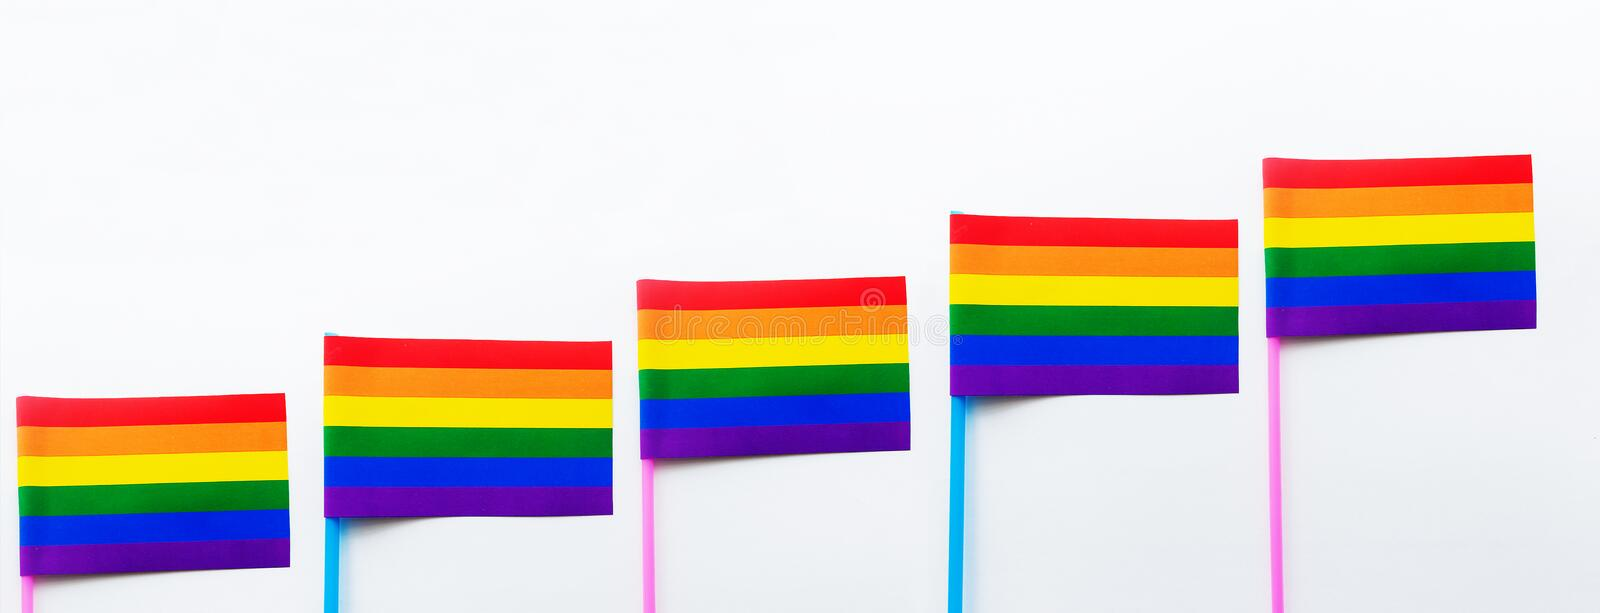 LGBT rainbow flag on a white background, banner. The LGBT rainbow flag on a white background, banner stock image